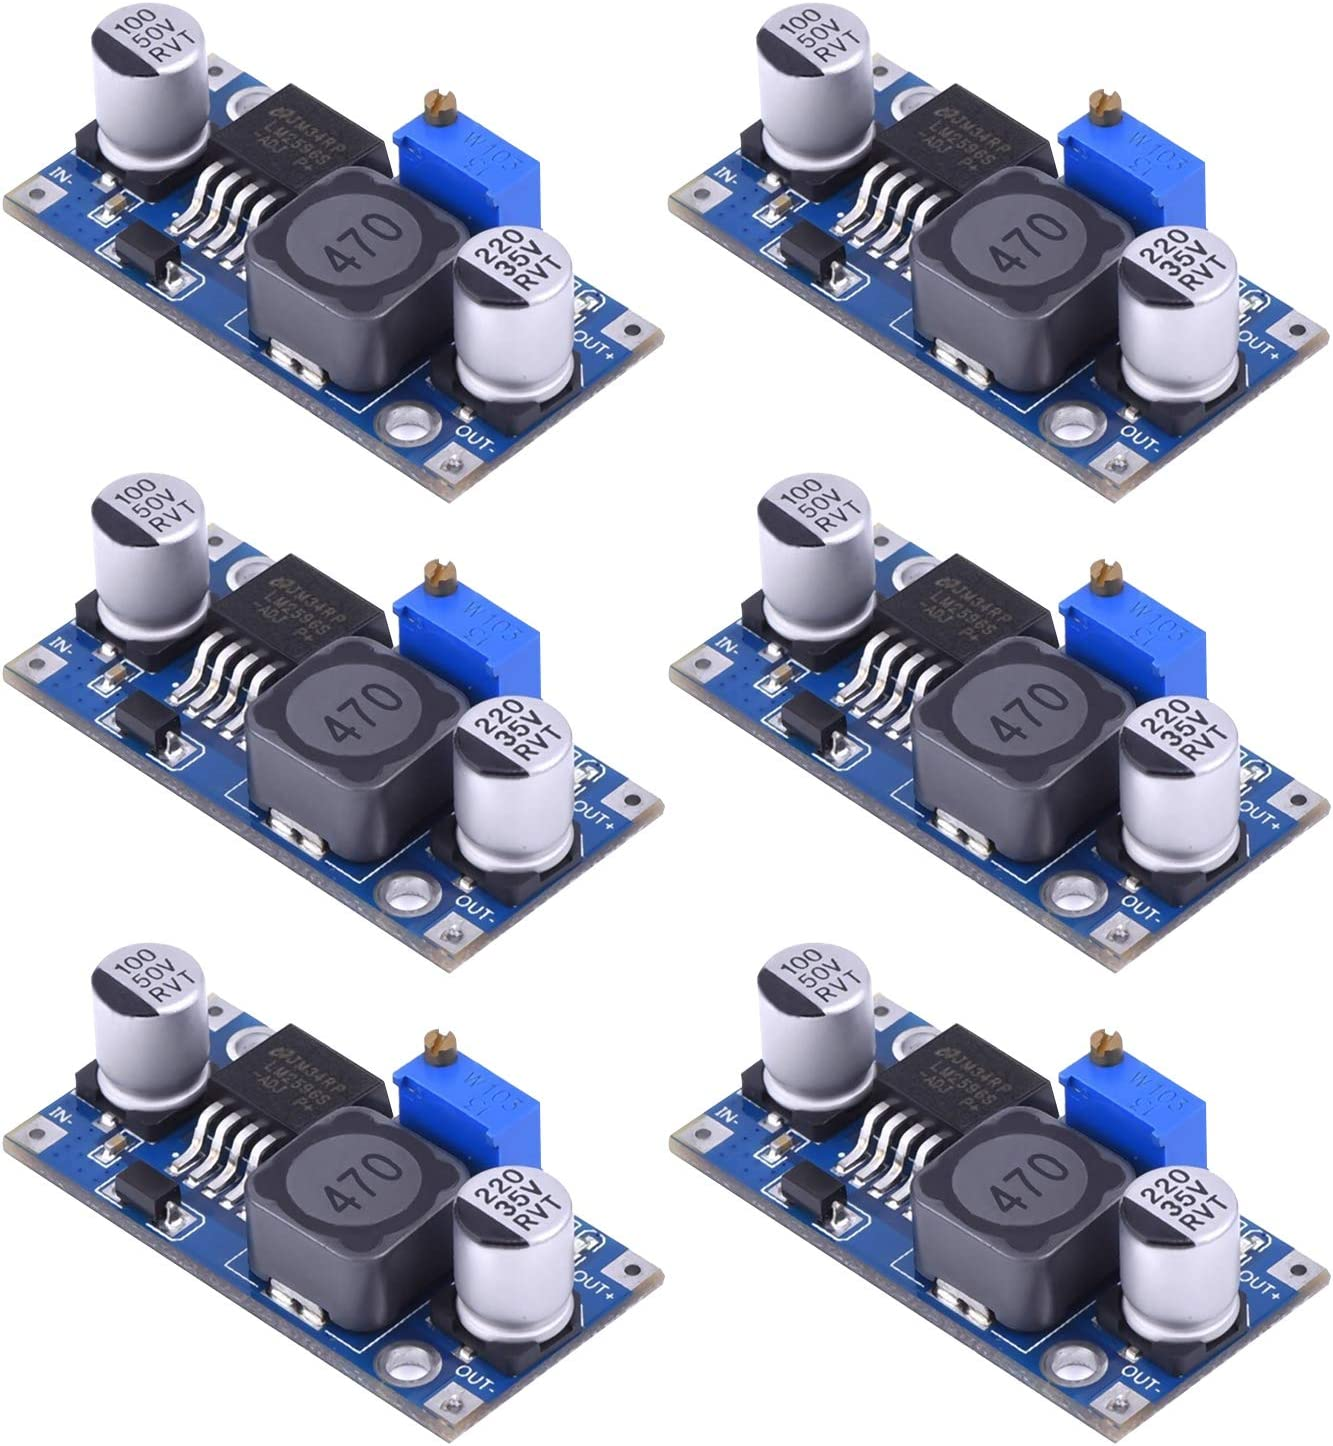 6 Pack DC DC Buck Converter LM2596S 3A Adjustable Power Supply Step Down Module